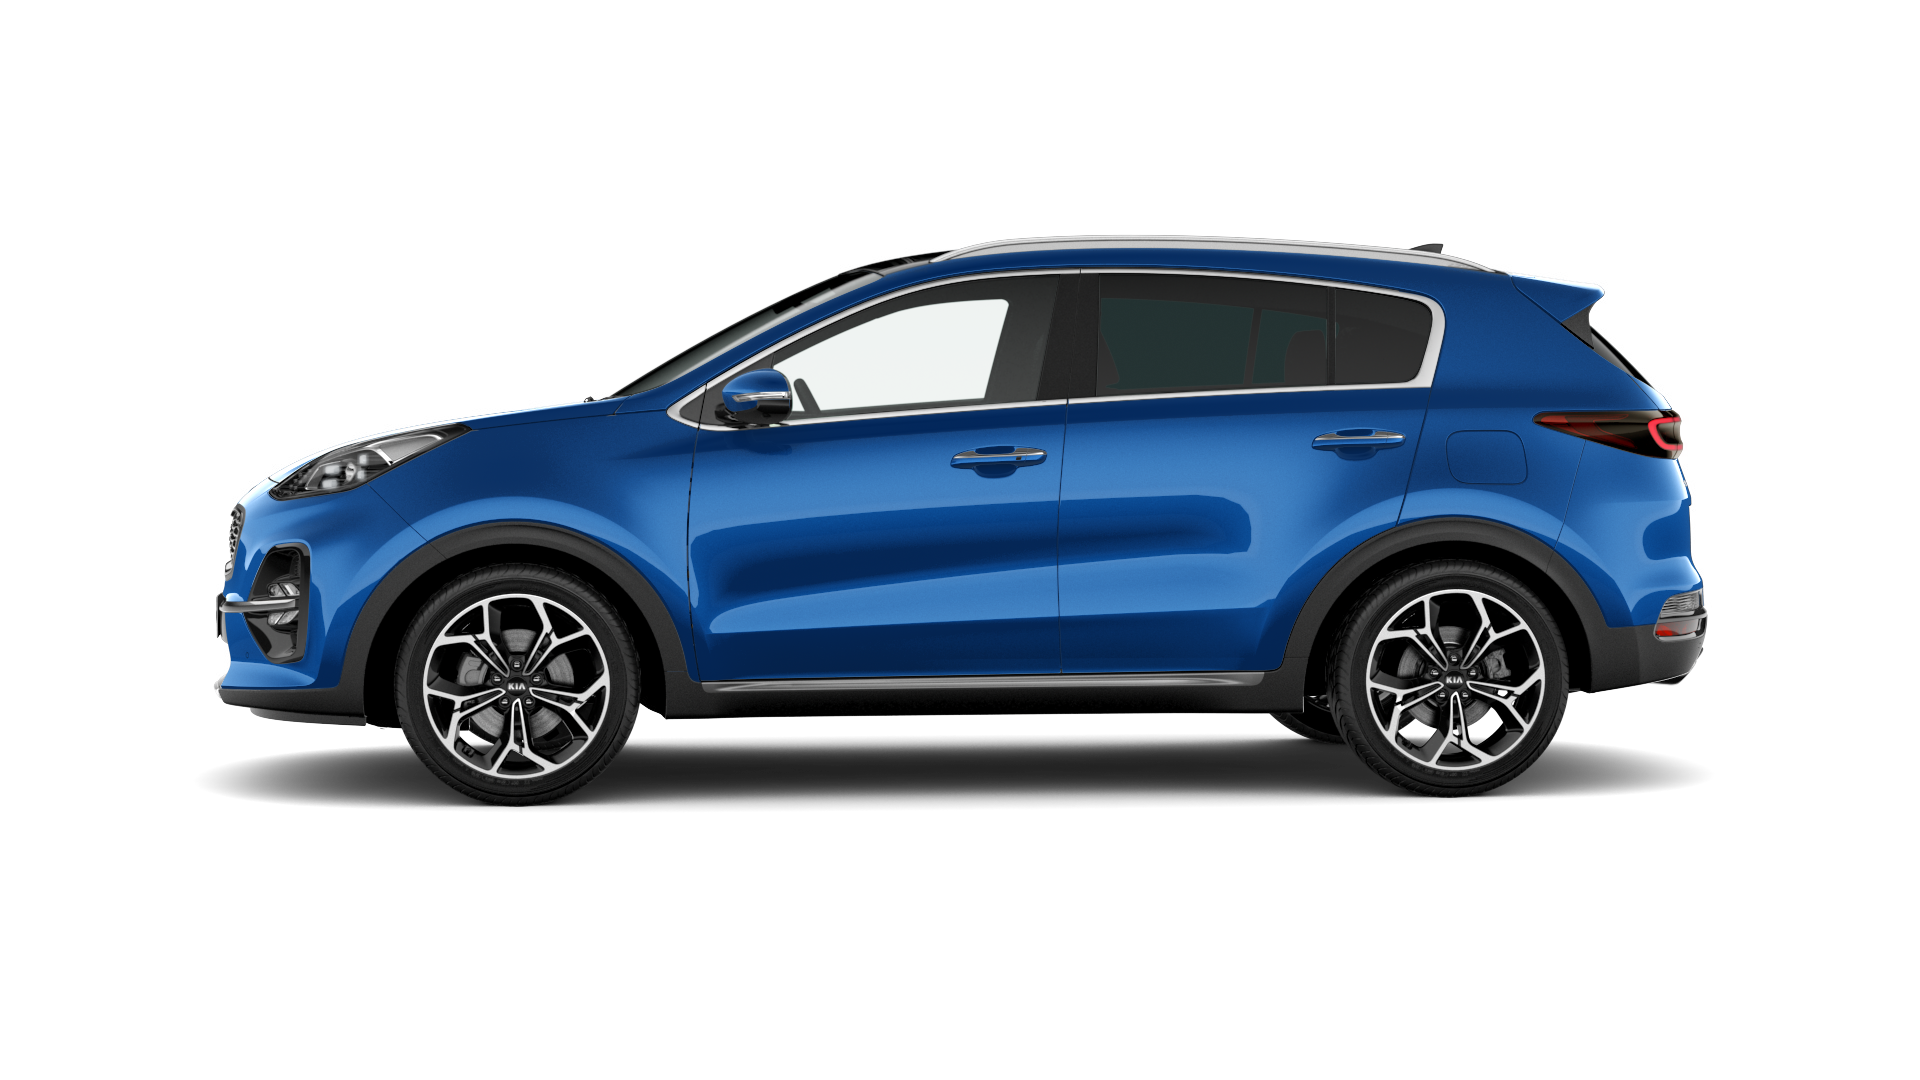 Kia New Sportage Blue Flame